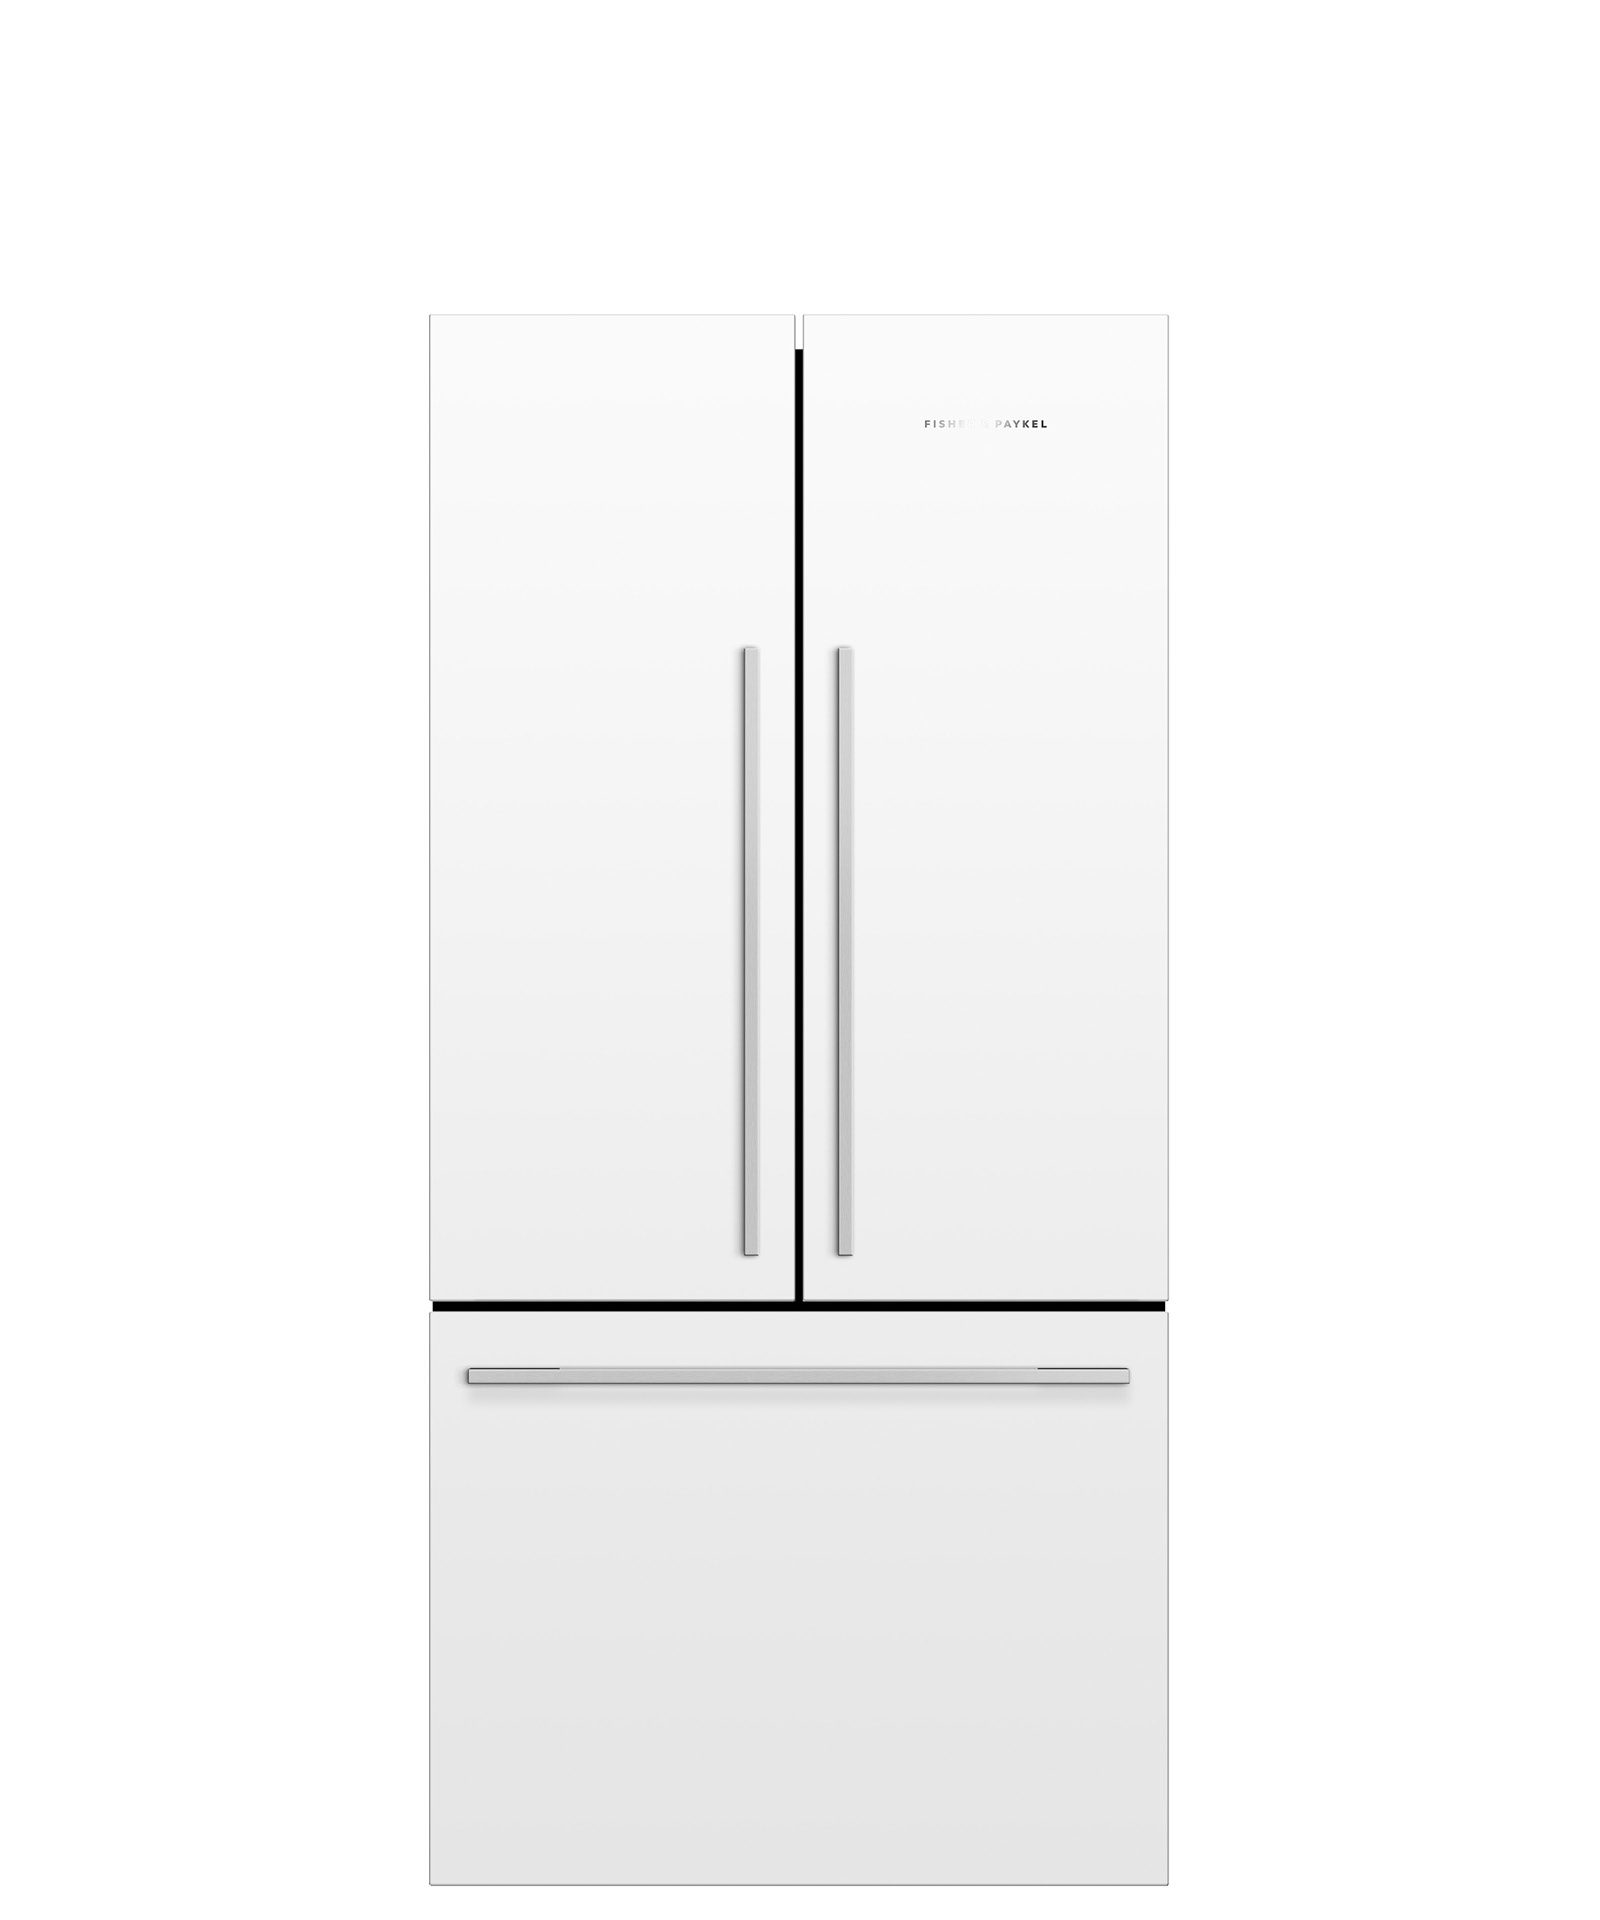 Model: RF170ADW5_N | French Door Refrigerator 17 cu ft